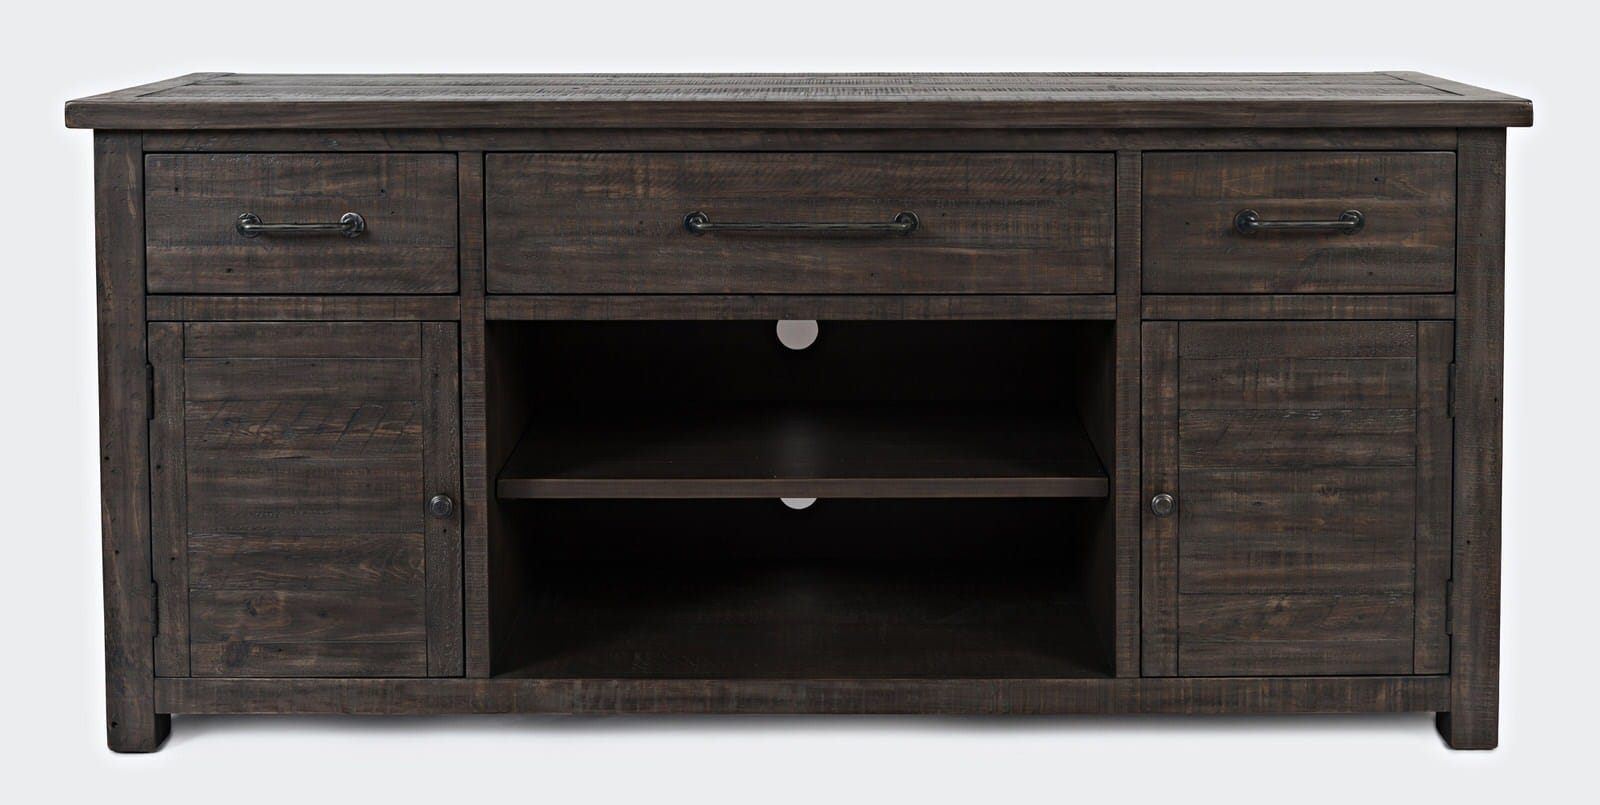 super popular 56cbf 17a8f Madison County Barnwood 70 Inch Console Table by Jofran Furniture